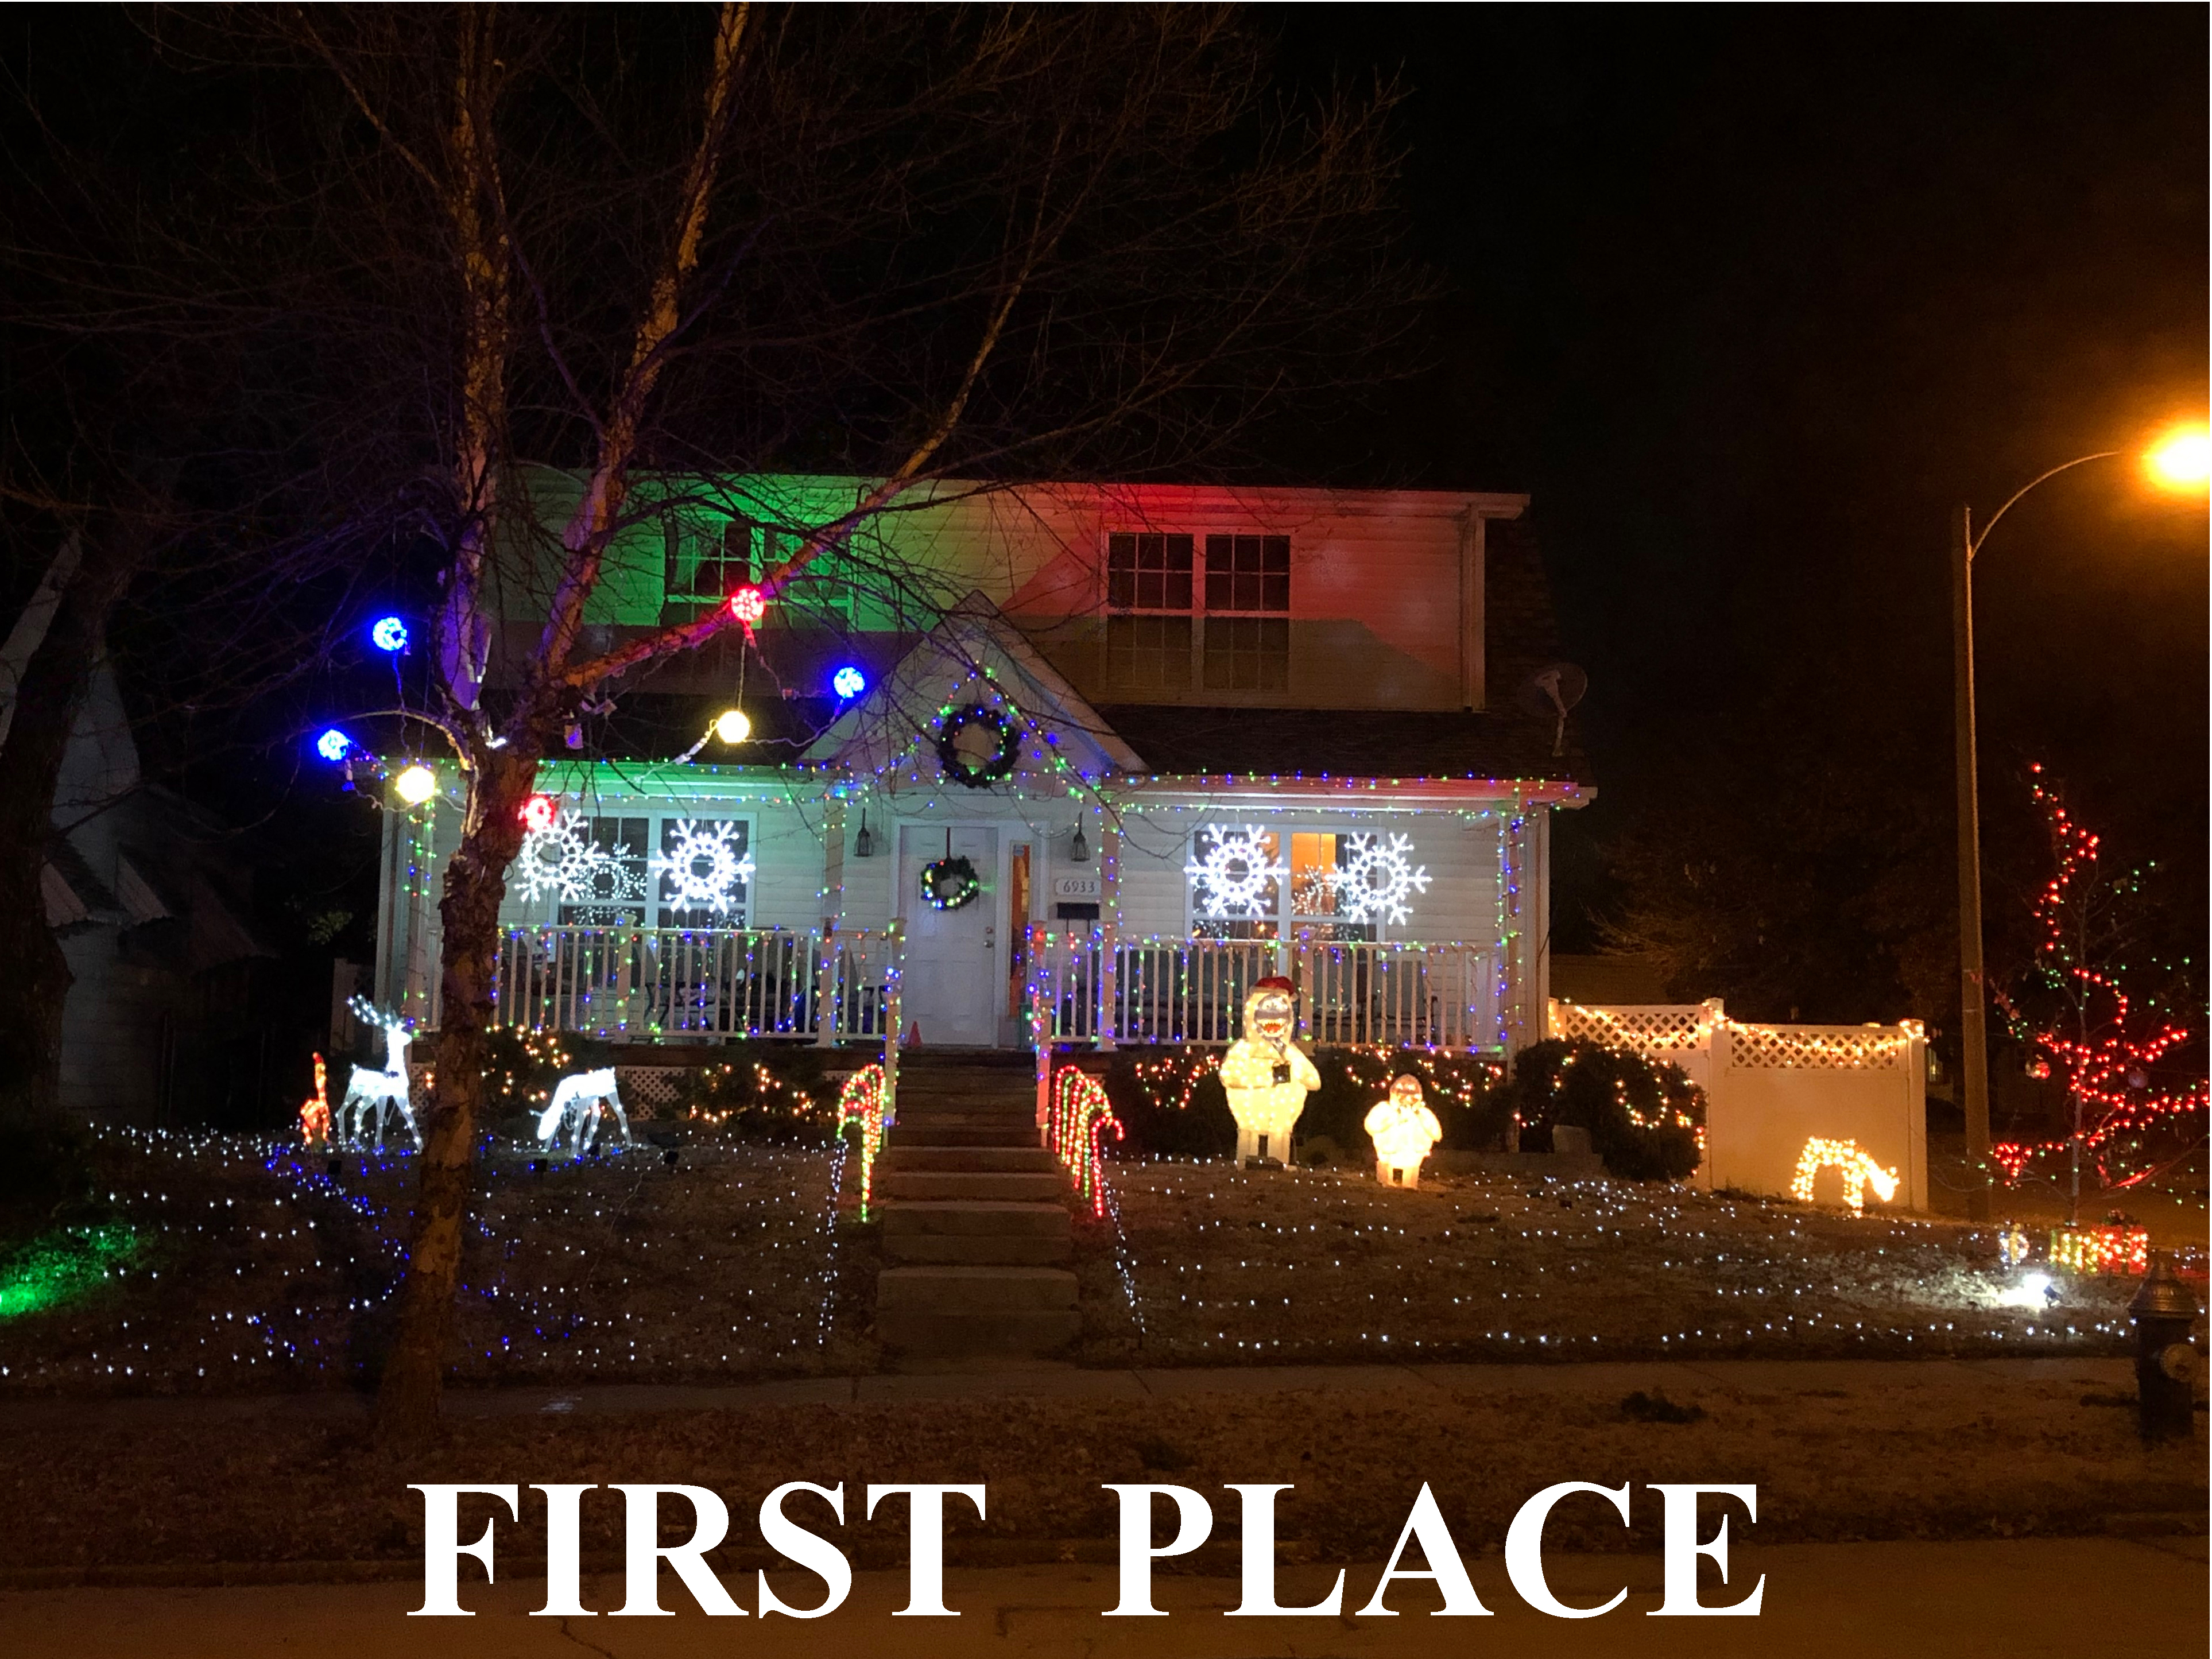 2018 Lindenwood Park Holiday Lighting Contest Winners Announced